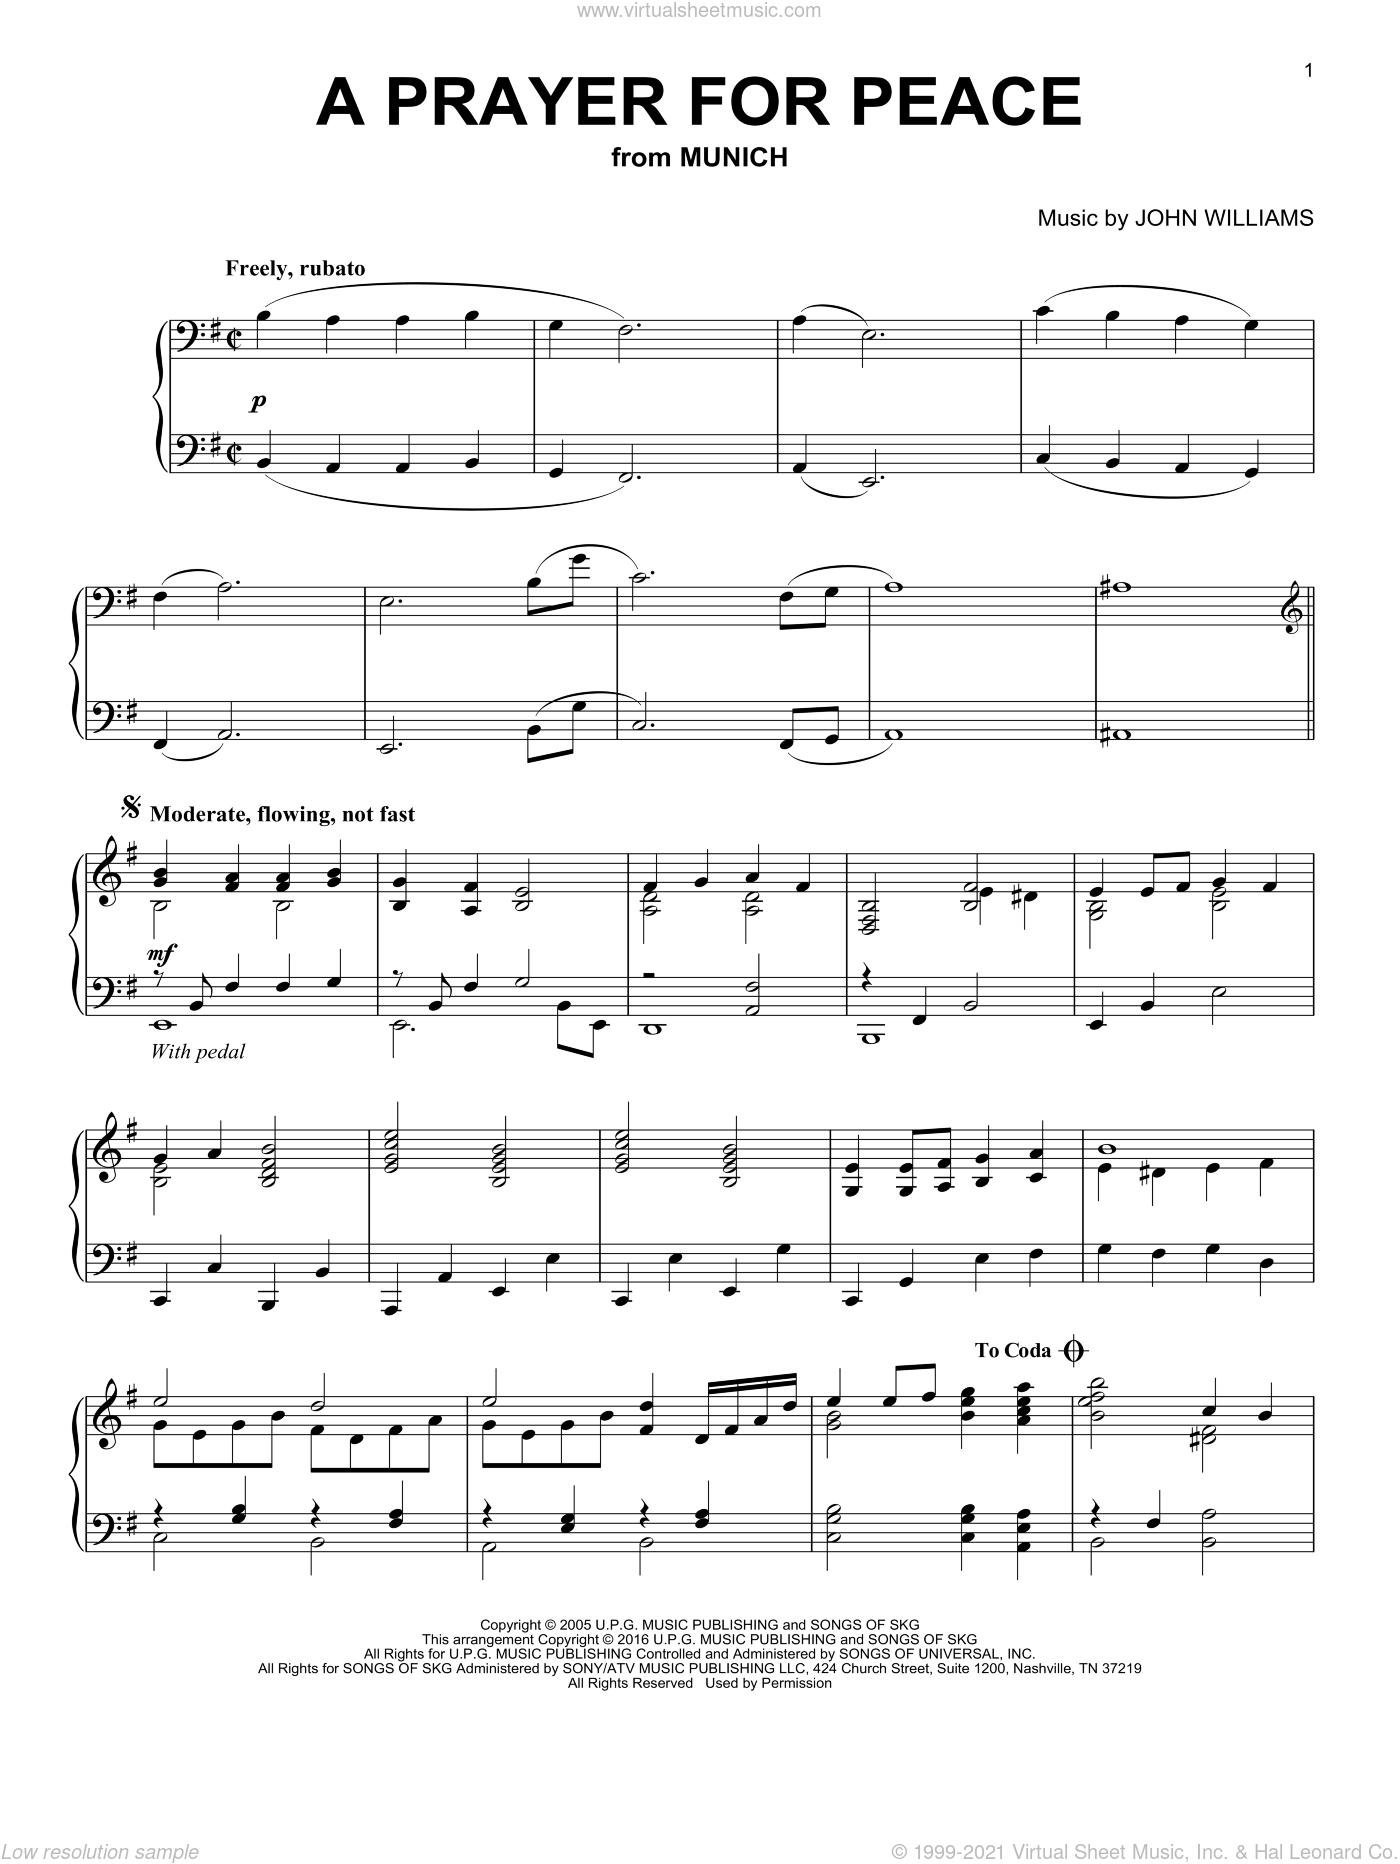 A Prayer For Peace sheet music for piano solo by John Williams, intermediate skill level